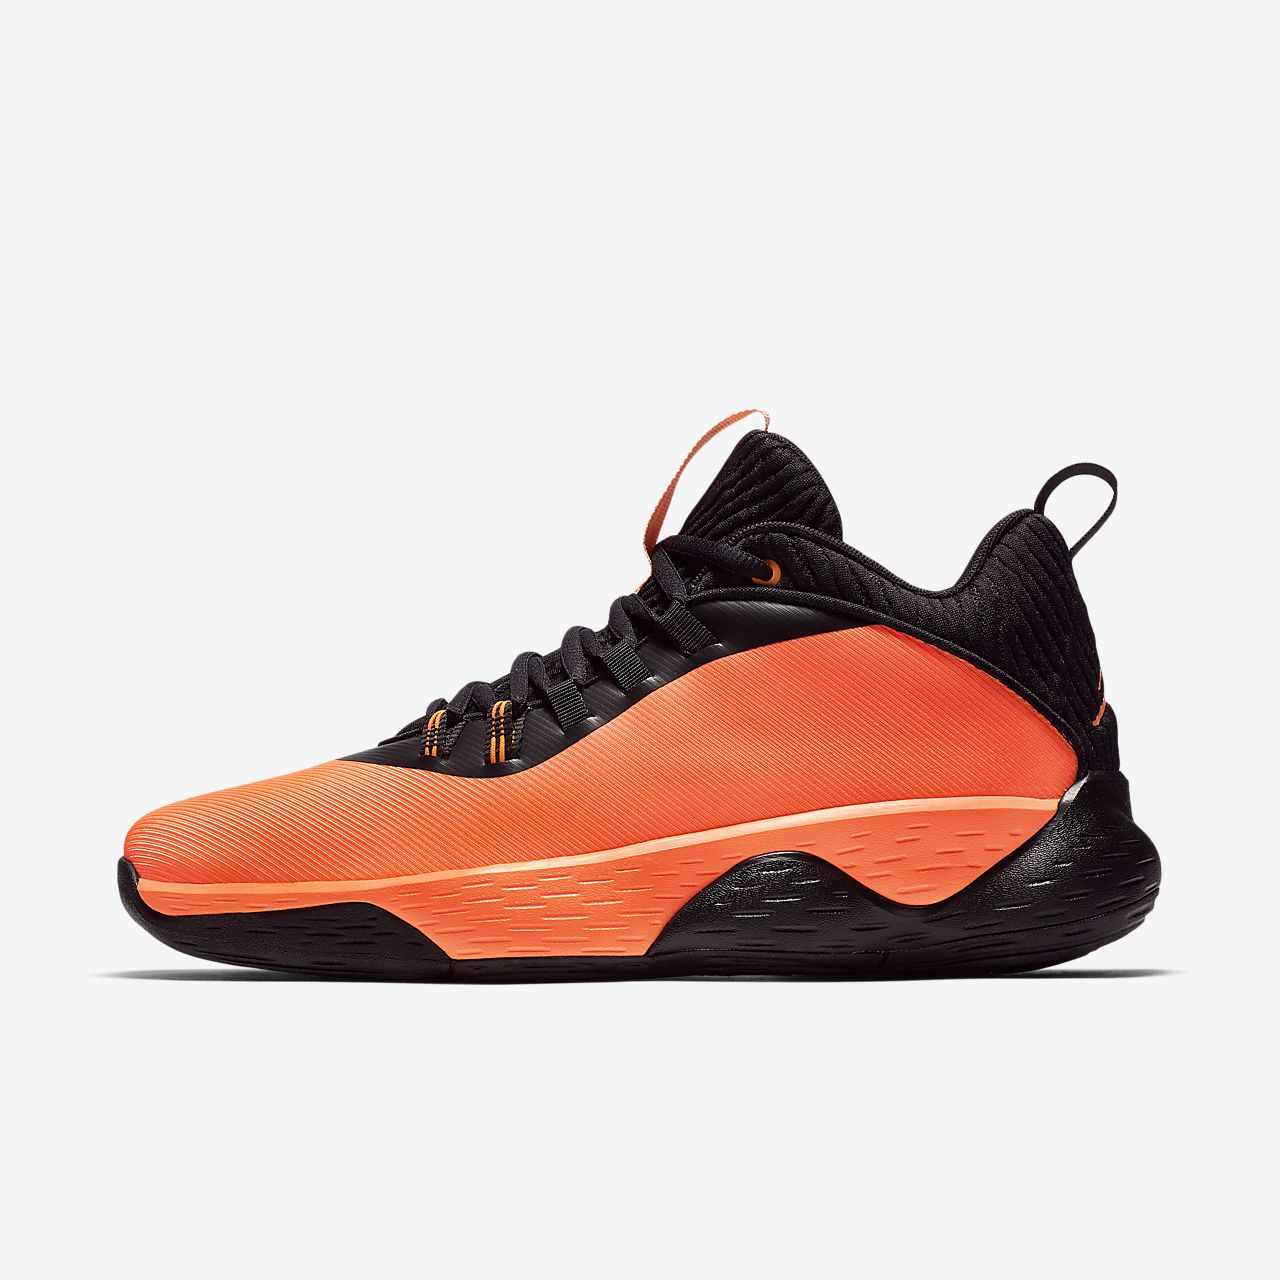 b10c398de4f Jordan Super.Fly MVP Low Men s Basketball Shoe. Nike.com ID